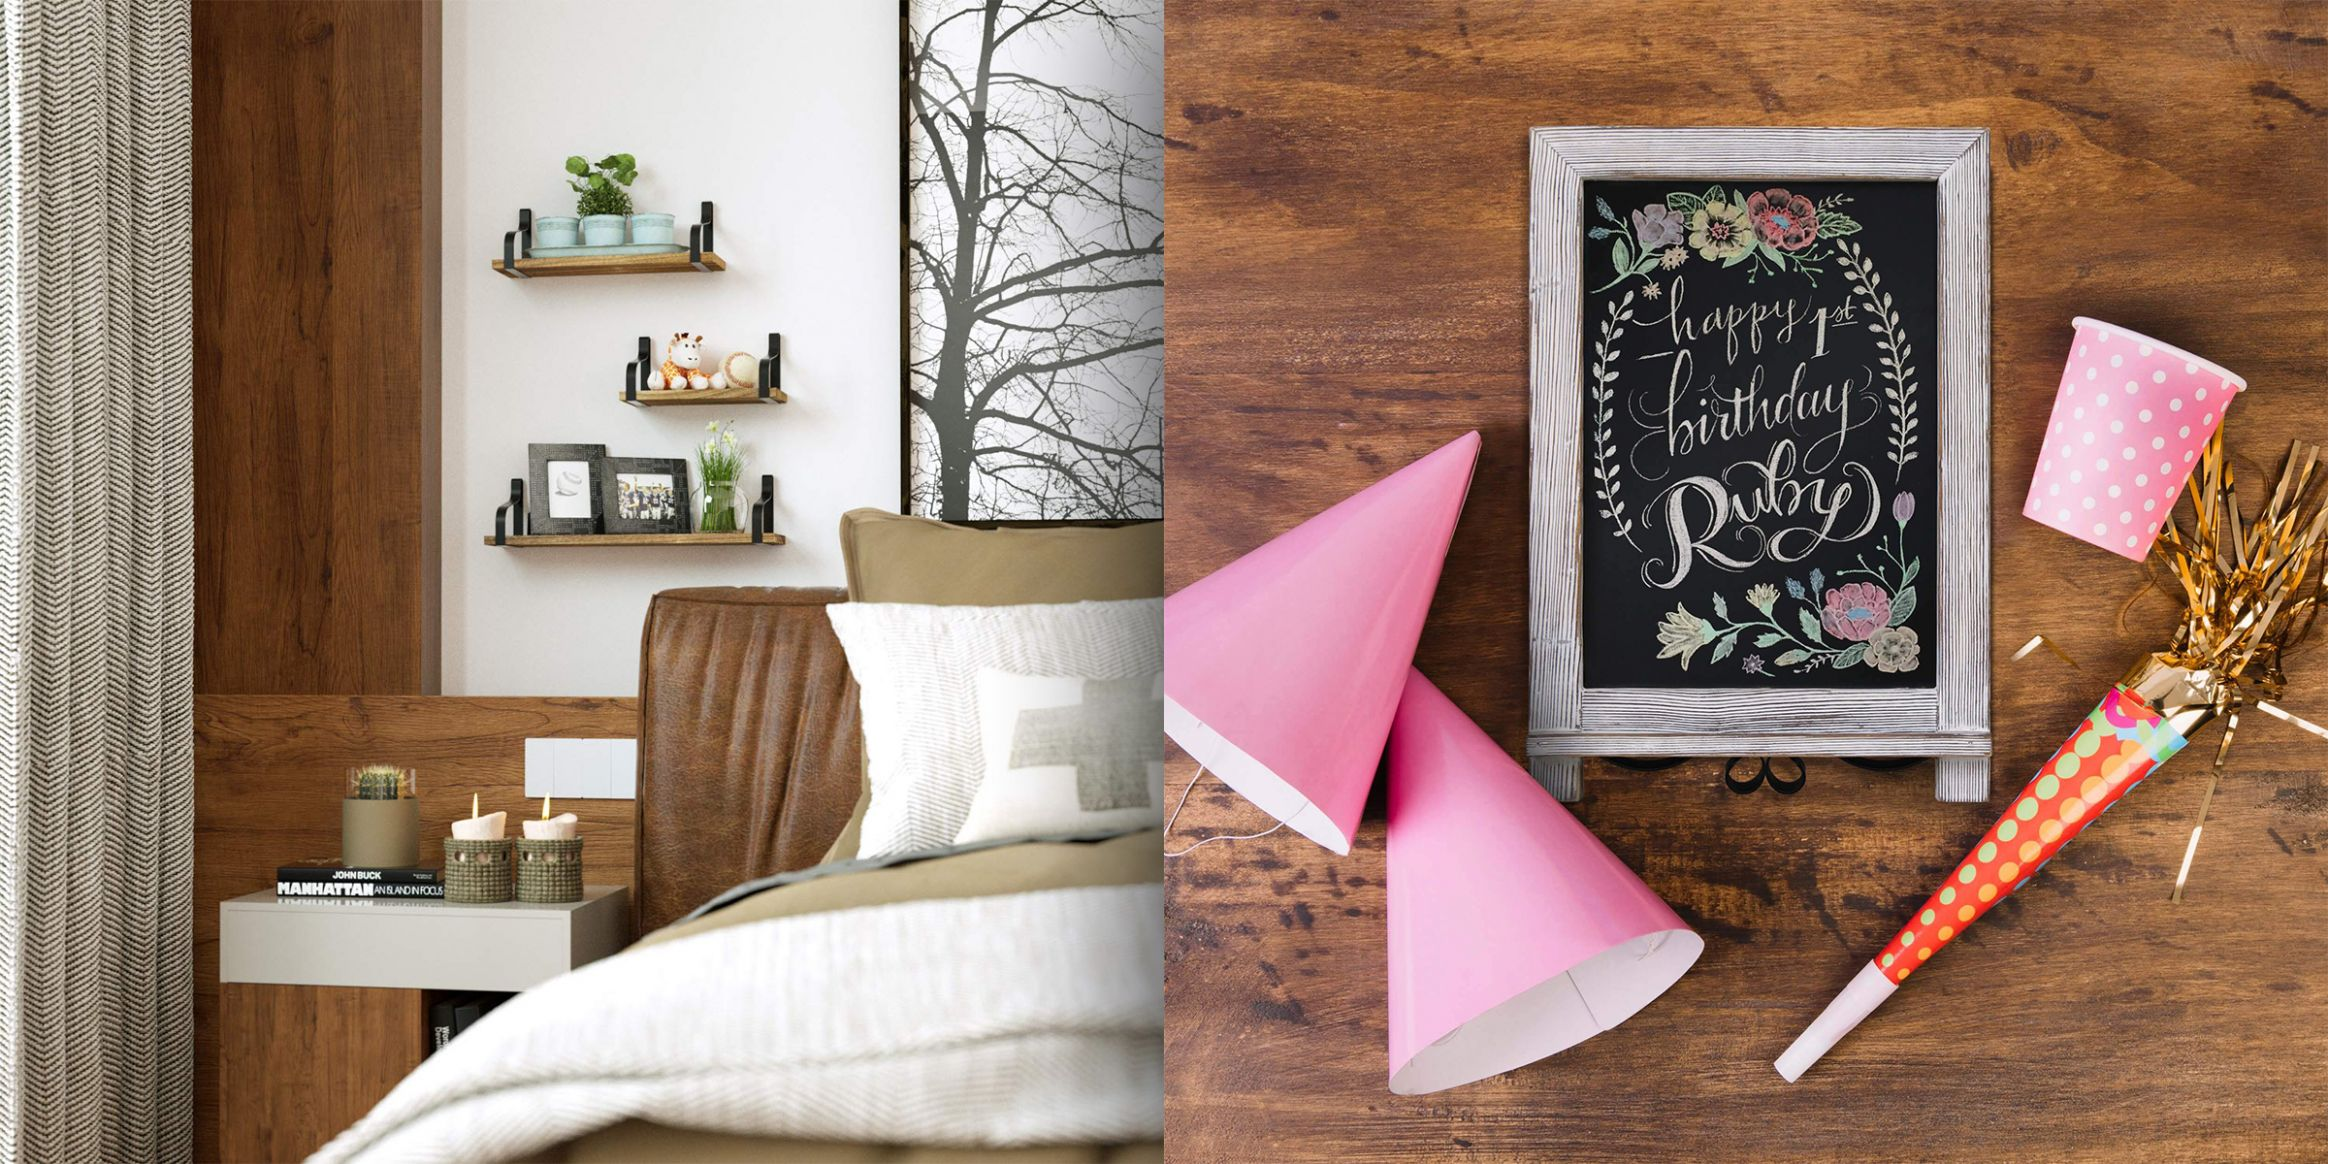 11 best home decor gifts 11 - home decor gifts